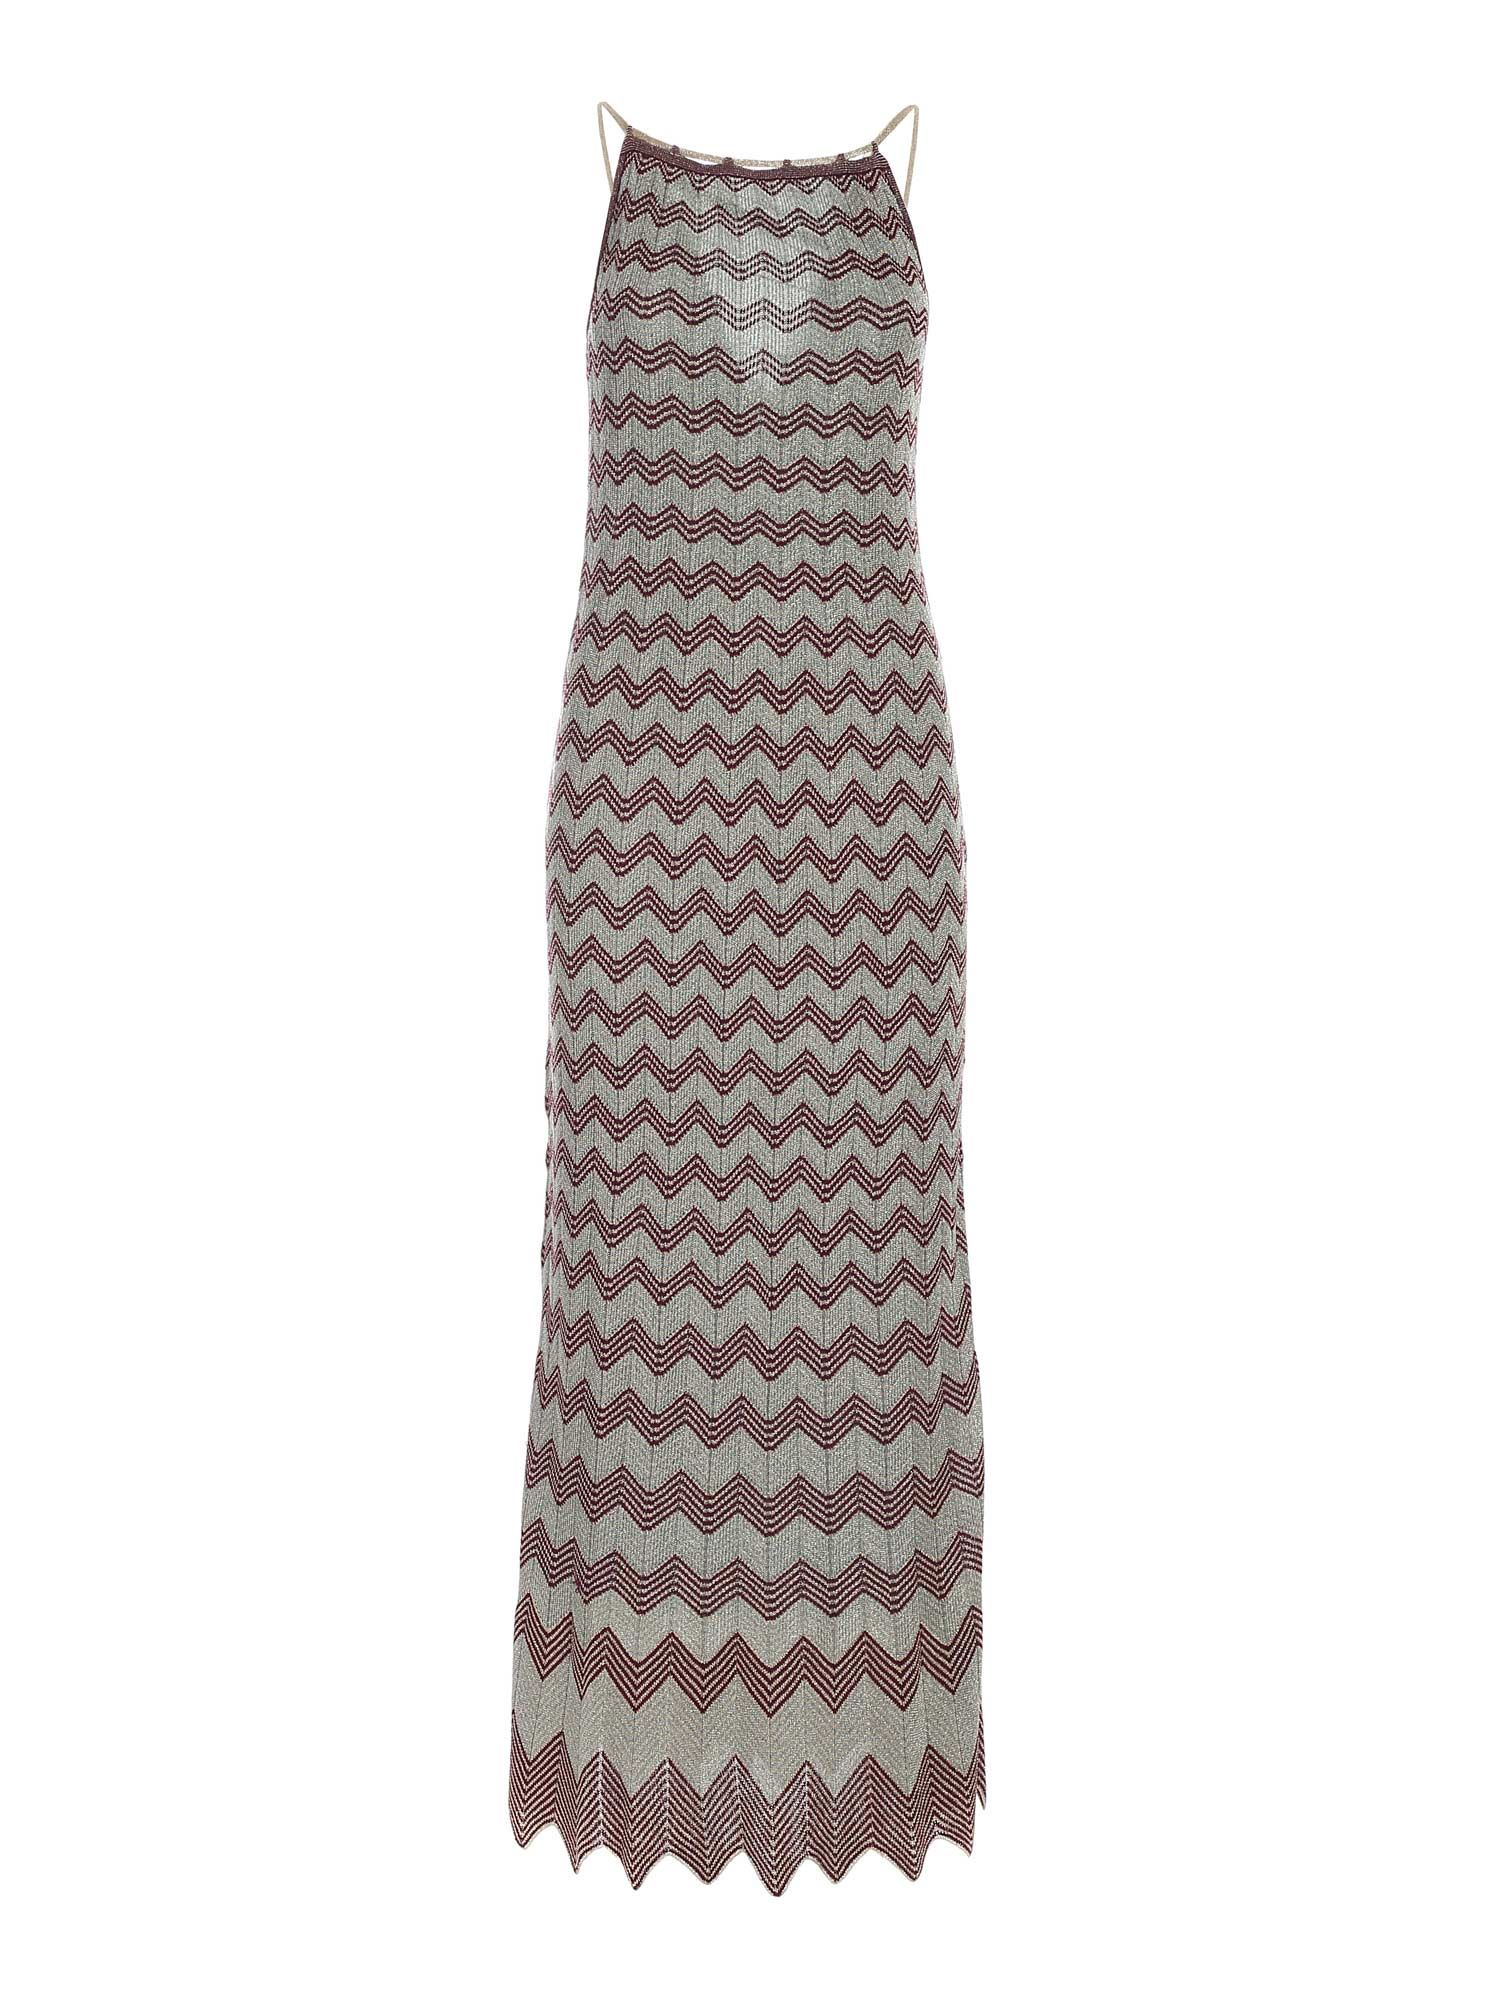 M Missoni LAMÉ KNITTED DRESS IN LIGHT BLUE AND GOLD